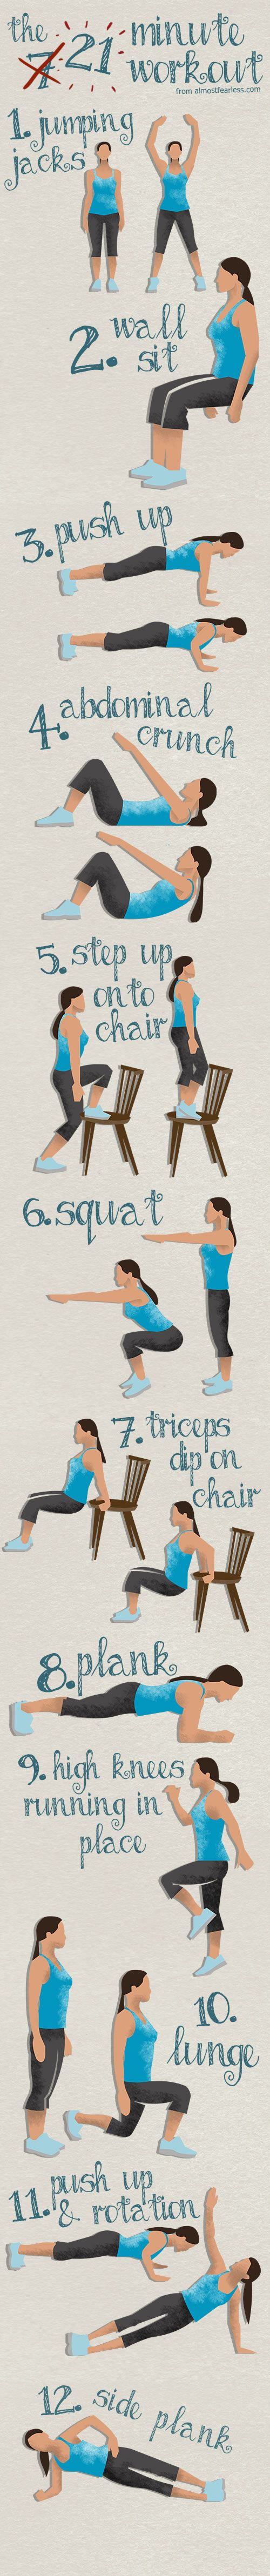 I'm doing this: http://life.almostfearless.com/the-21-minute-workout-or-7-minutes-if-youre-really-fit/